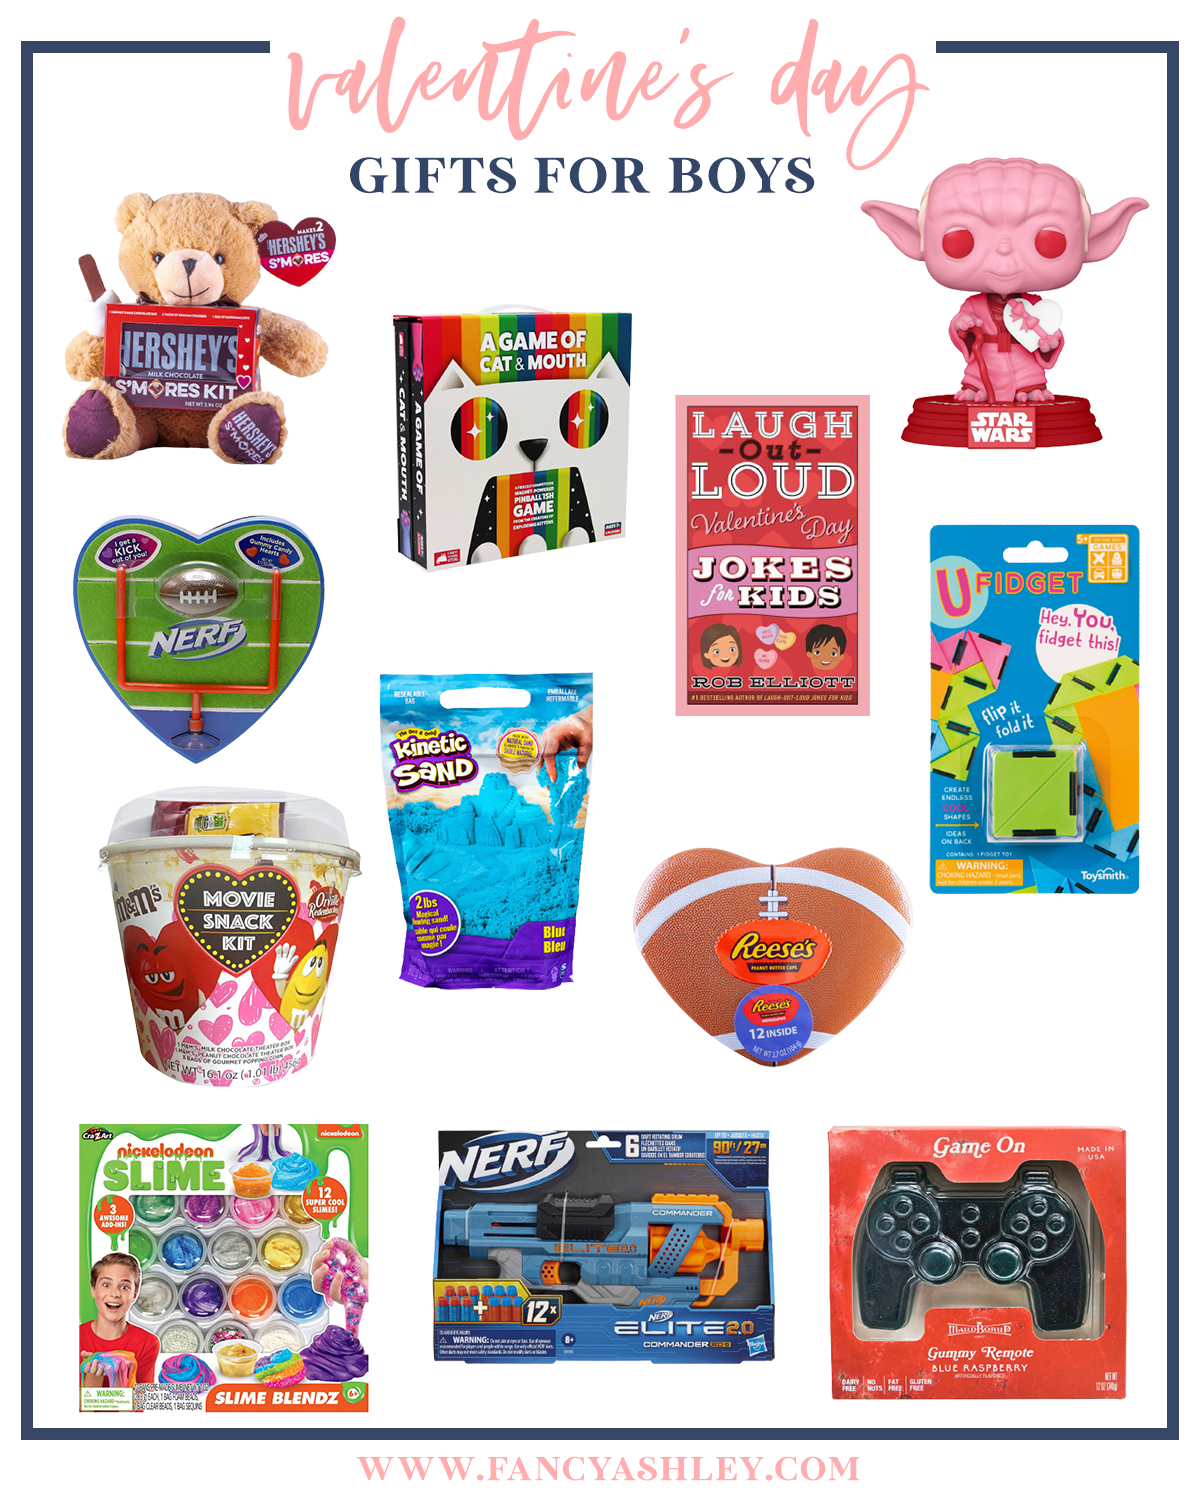 Valentine's Day Gift Ideas for Kids by popular Houston life and style blog, Fancy Ashley: collage image of a a stuffed Hershey bear, Laugh out Loud jokes for kids, gummy game controller, slime kit, Nerf gun, A Game of Cat and Mouth, mini Nerf football set, M&M's movie snack kit, kinetic sand, Yoda bobble head, U fidget, and Reese's heart shaped football candy.